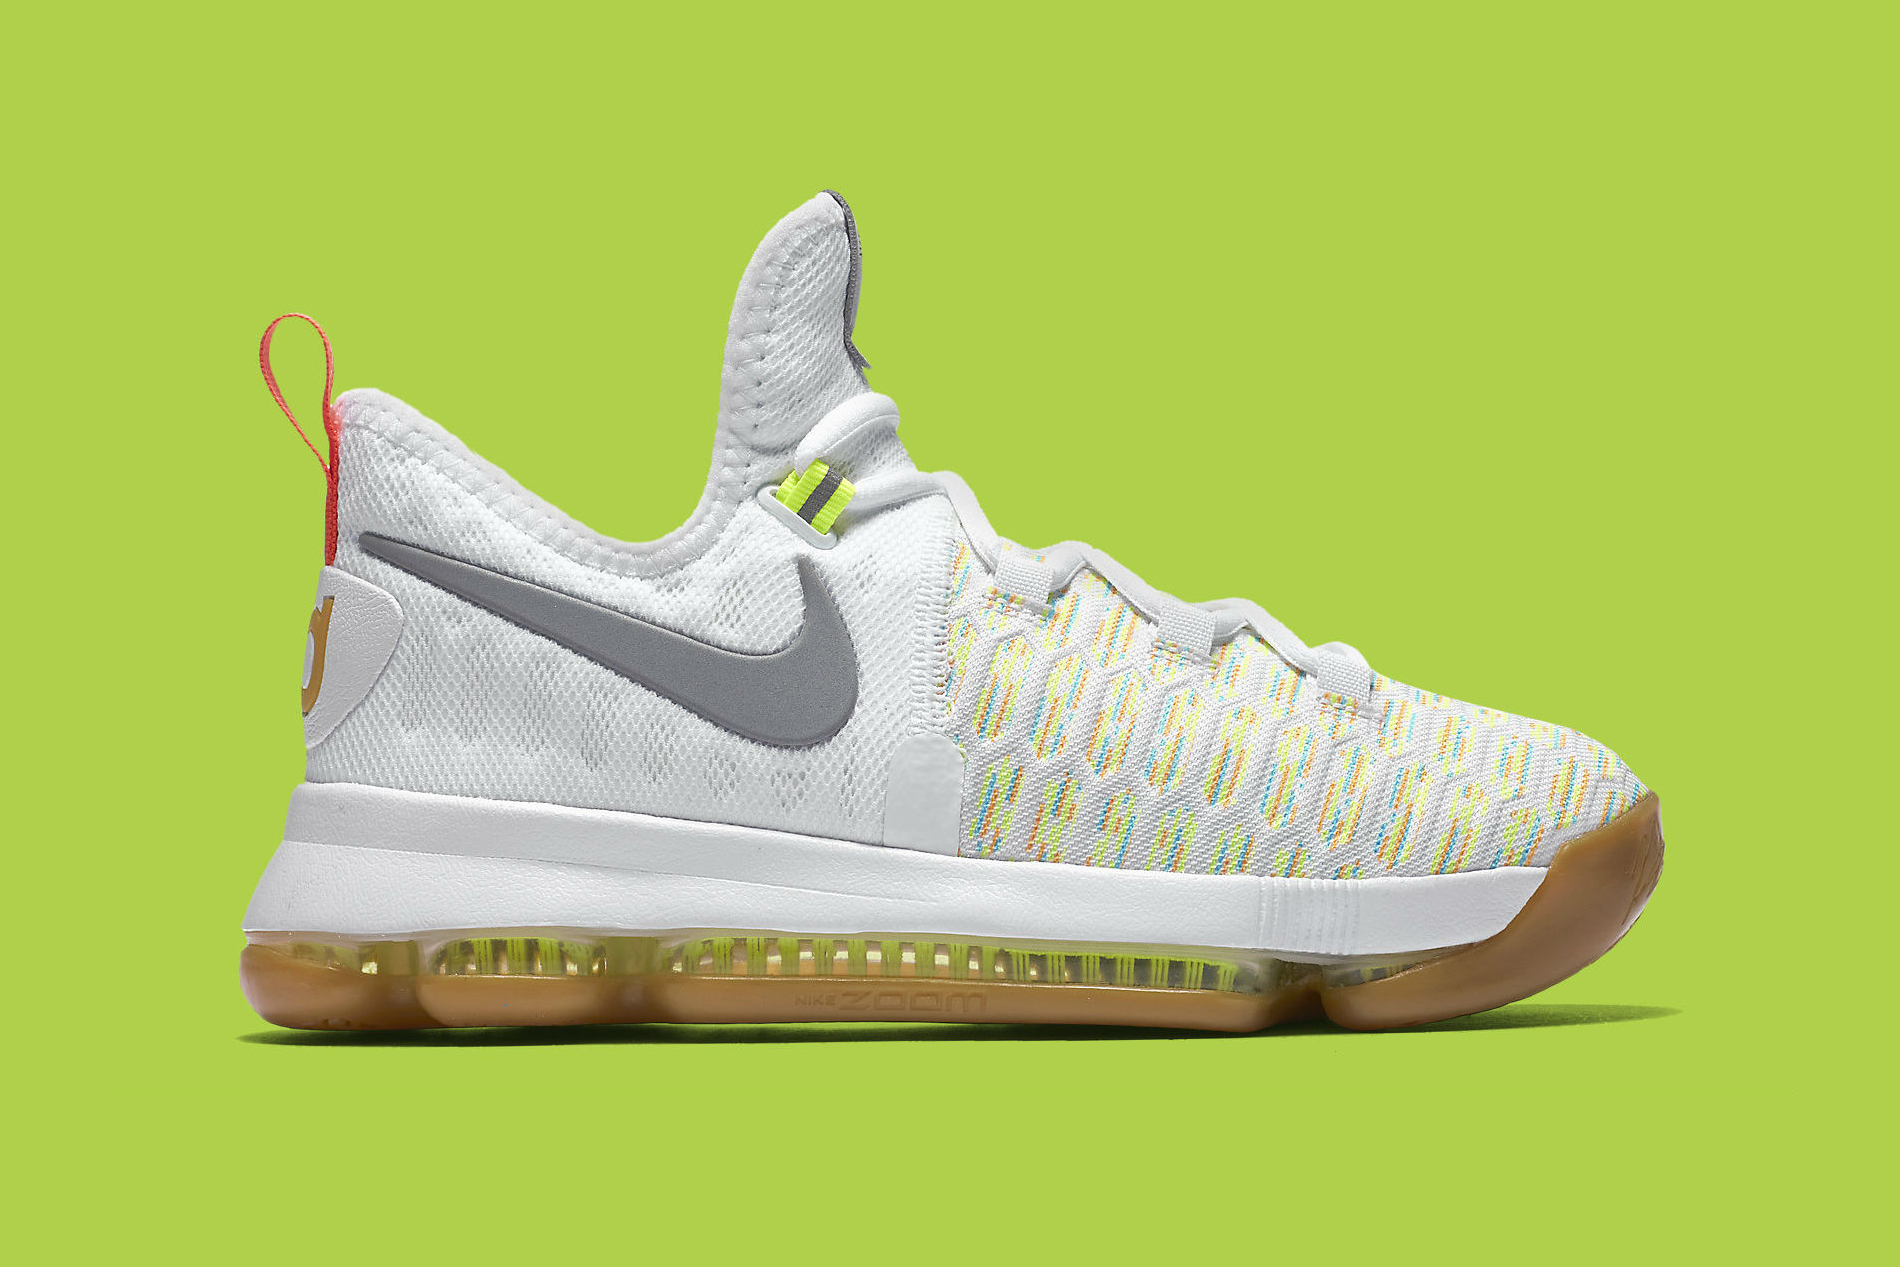 Nike's Multicolored Flyknit Gets Paired With a Gum Sole in This KD9